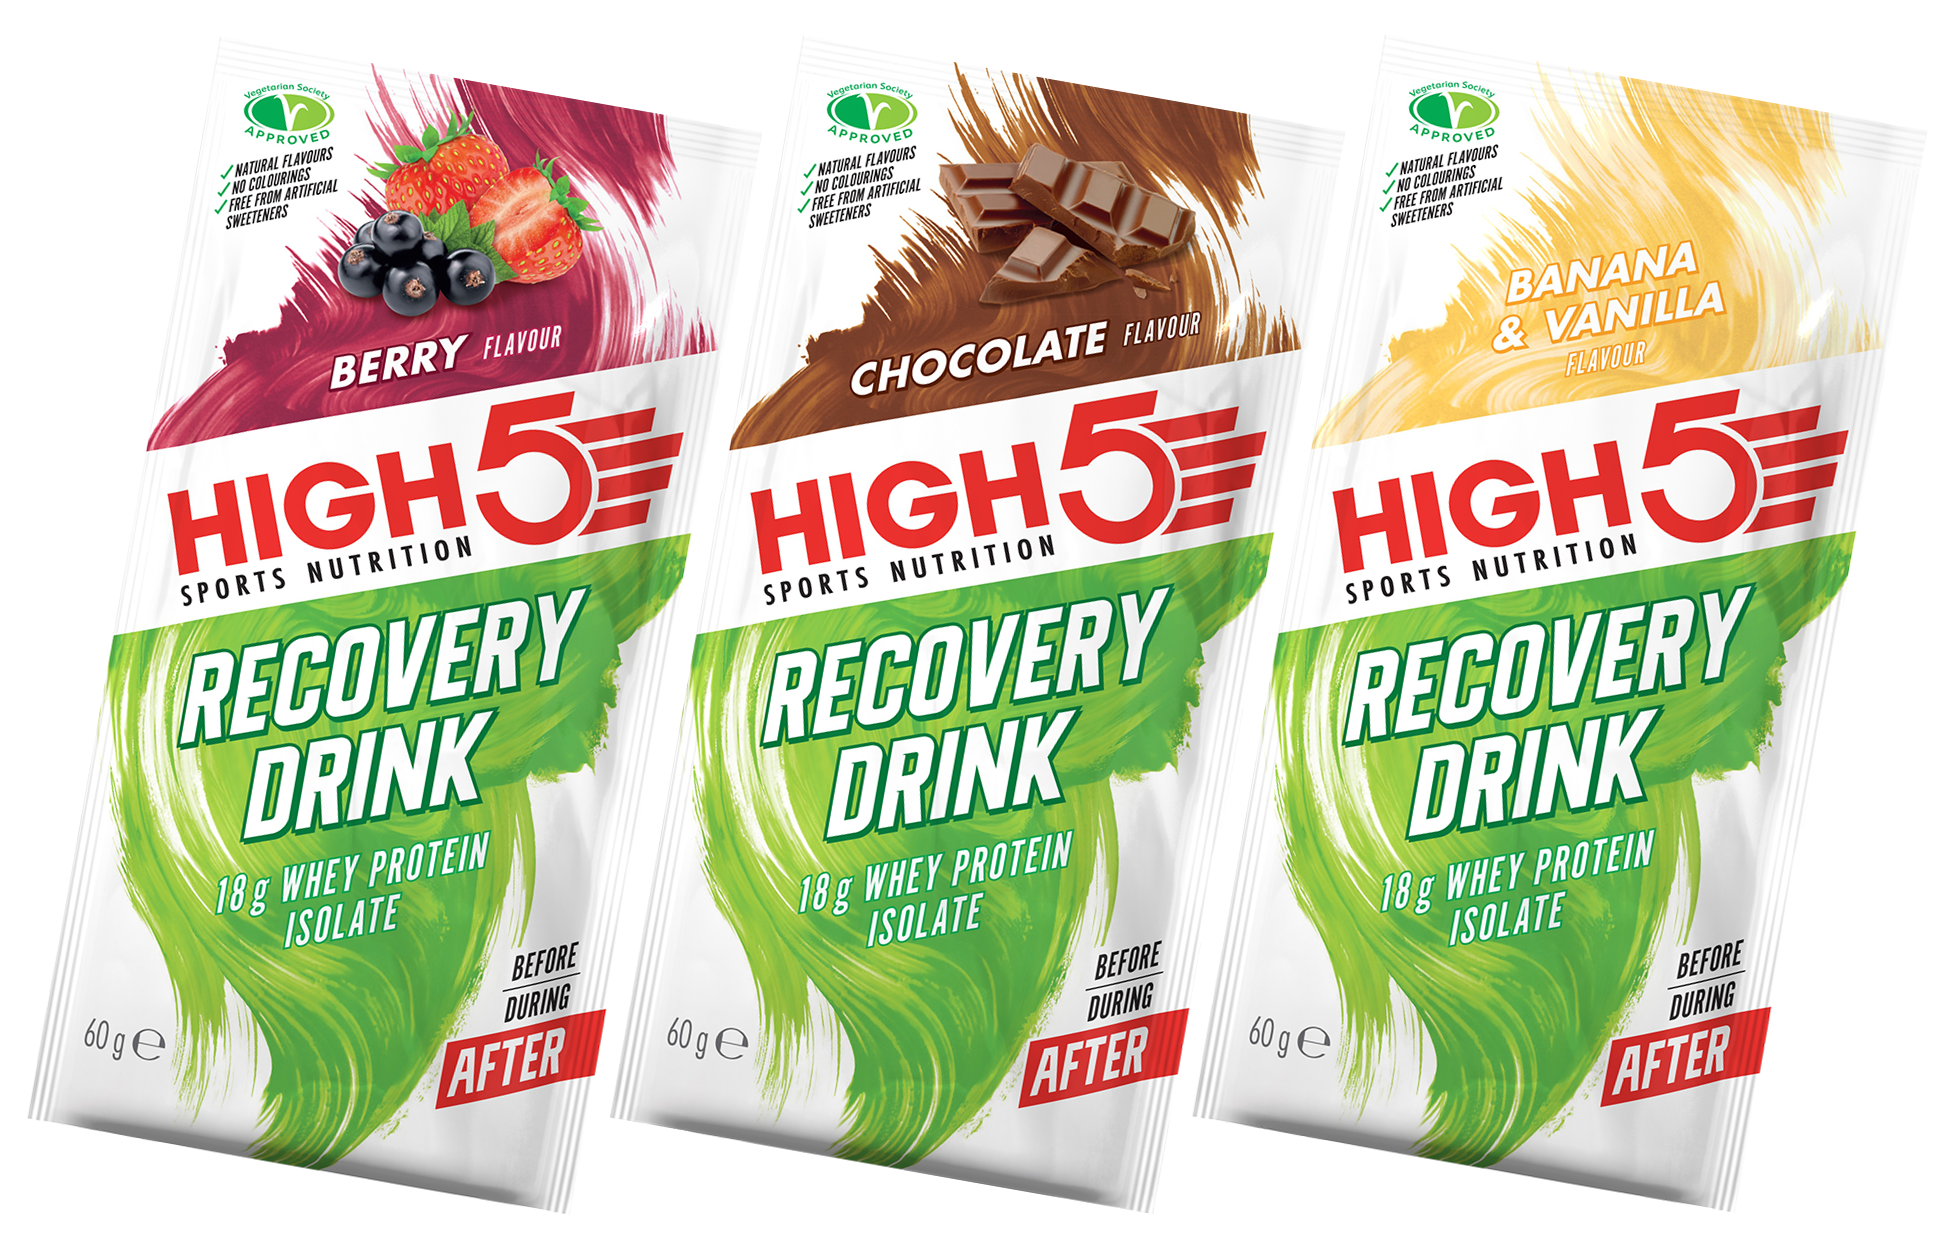 High5 Recovery Drink (Protein Recovery) 60g